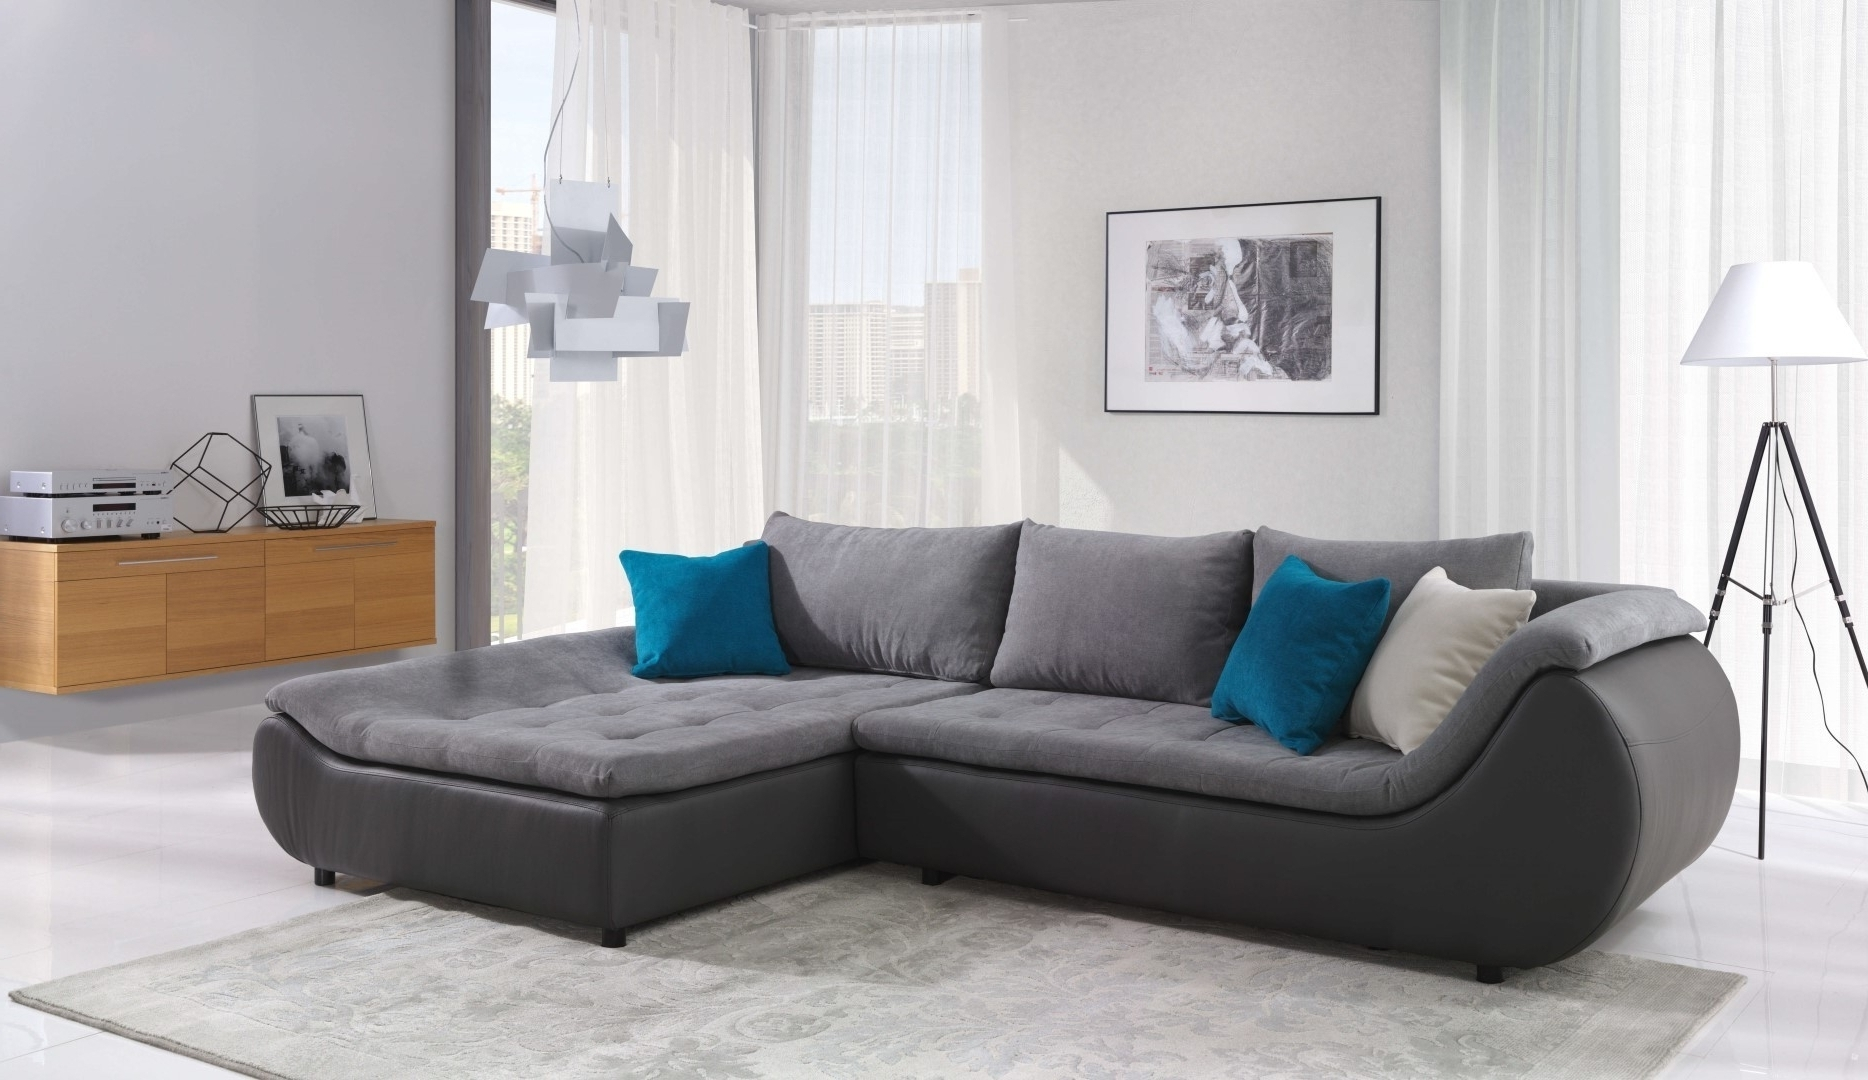 Trendy Collection Sectional Sofas Rochester Ny – Mediasupload Pertaining To Rochester Ny Sectional Sofas (View 13 of 15)